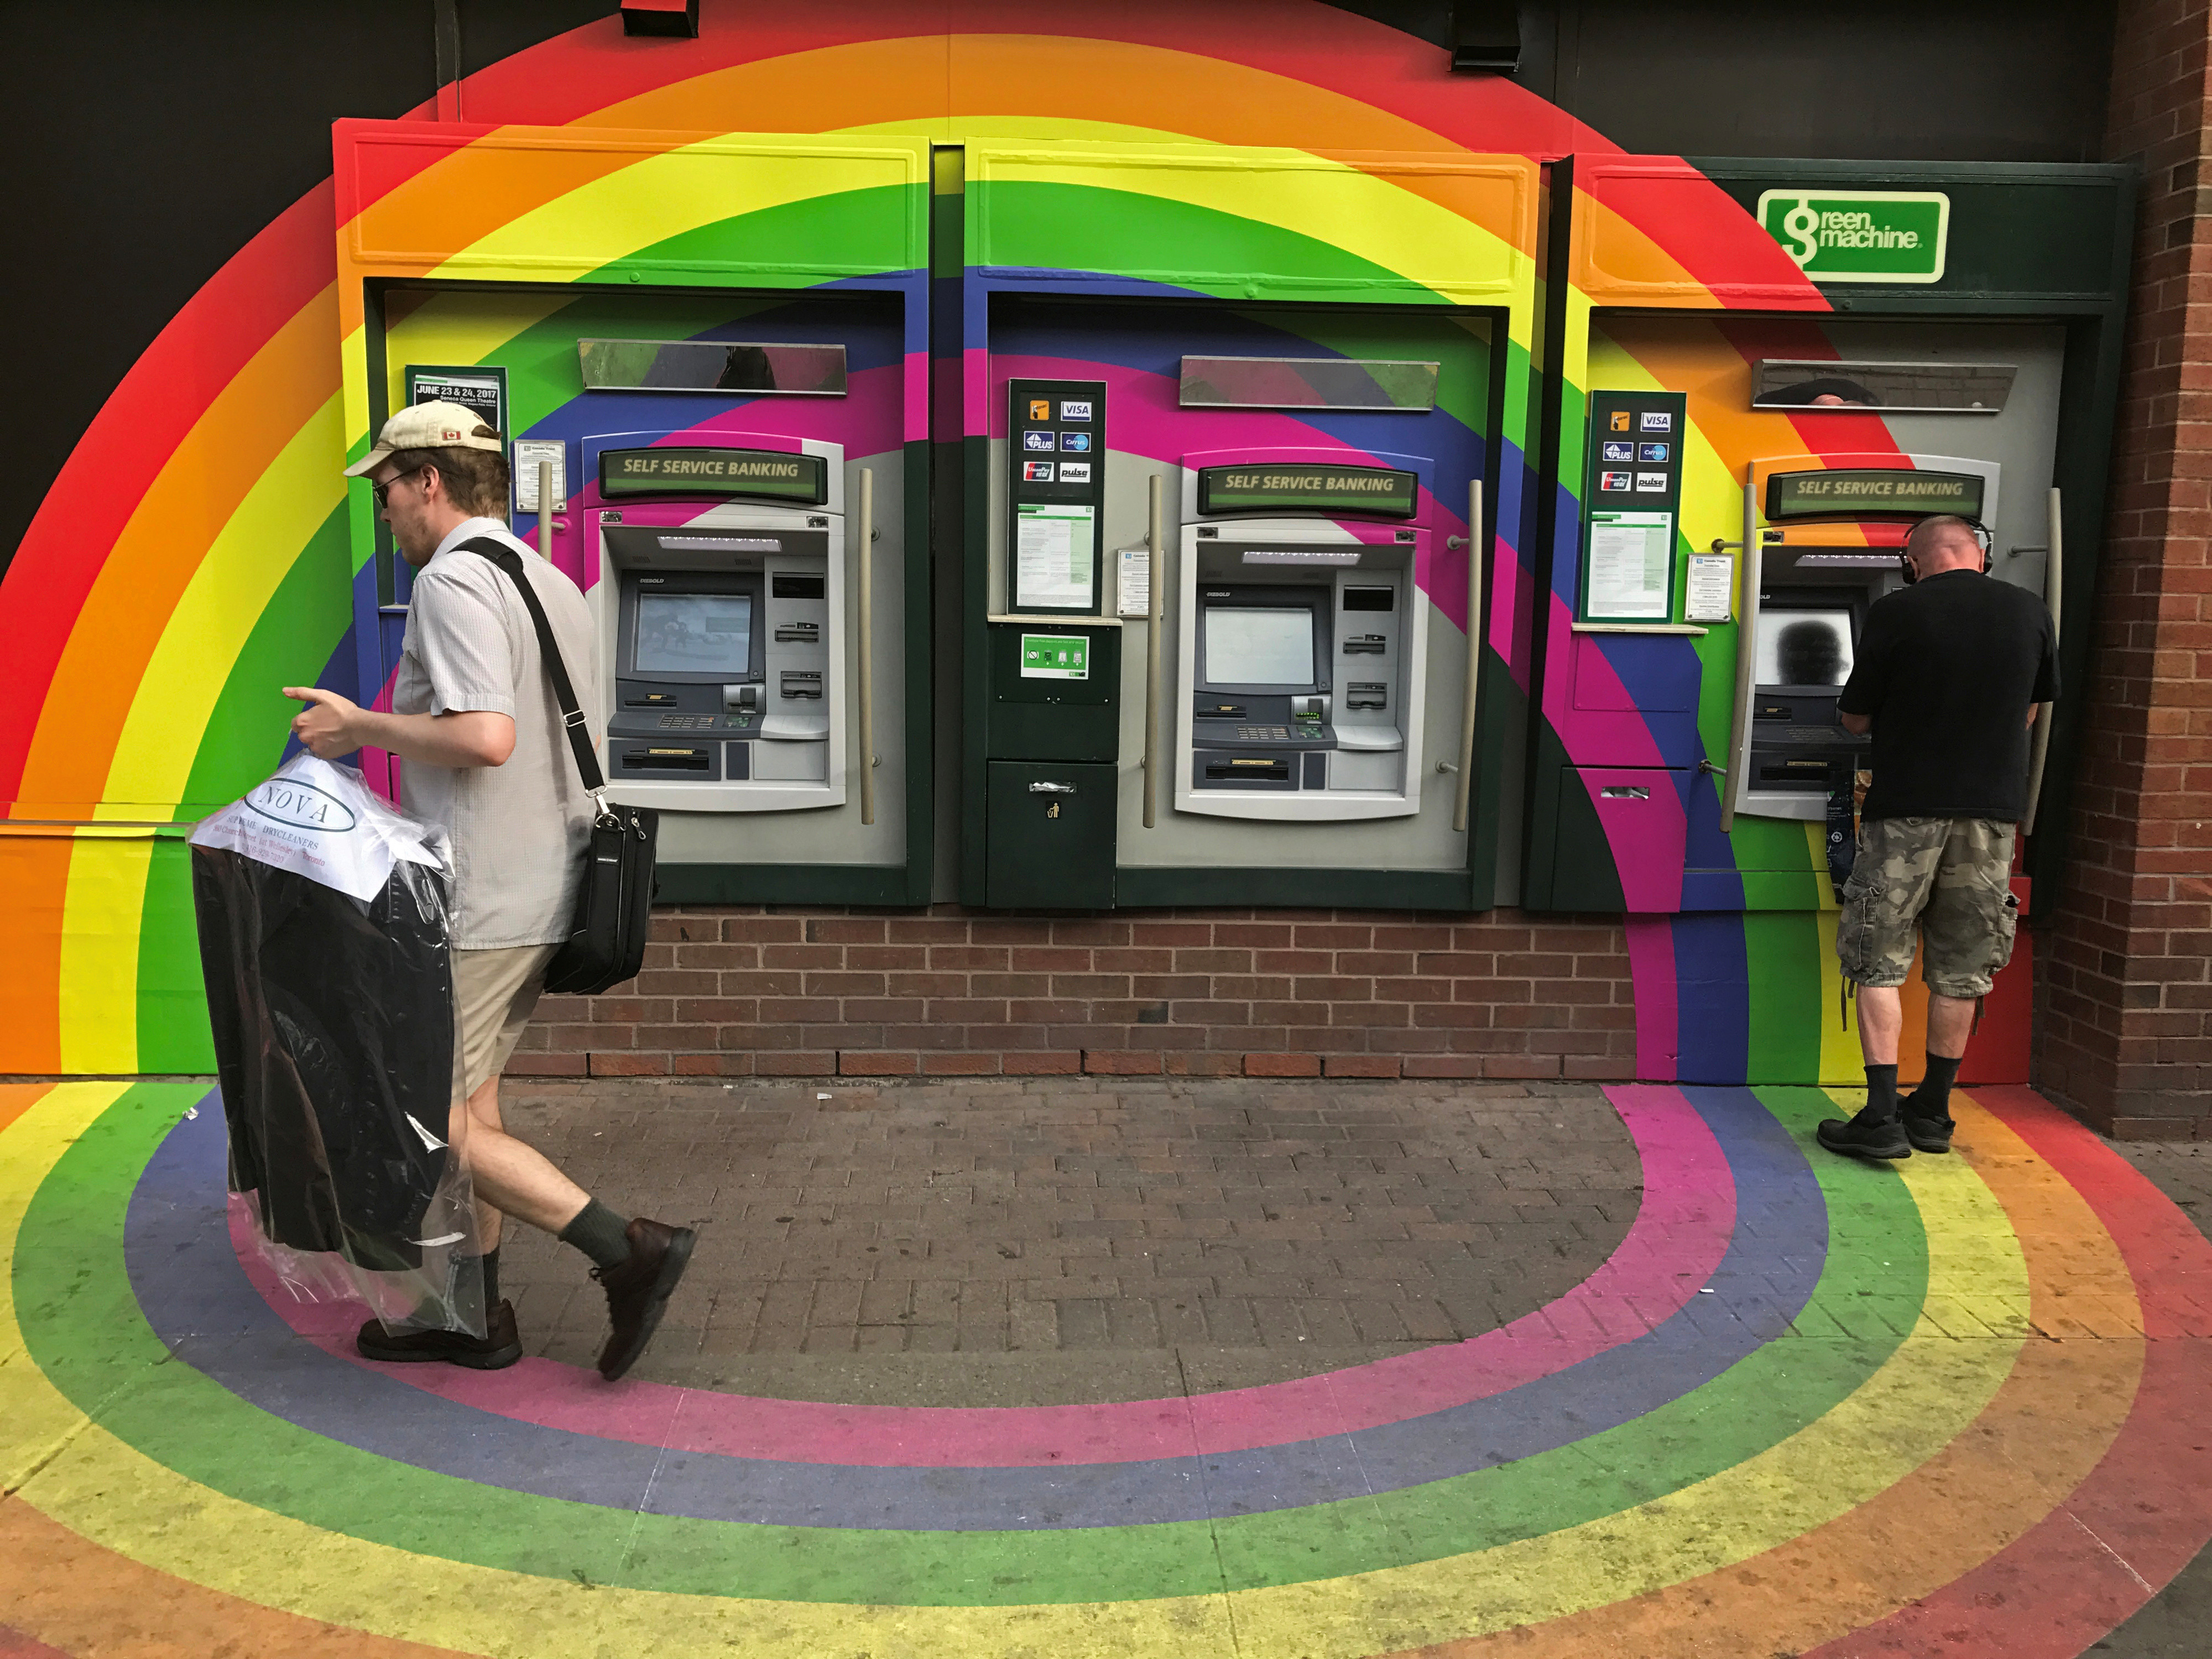 A customer withdraws money from an ATM at a Toronto-Dominion Bank (TD) branch adorned with colours of the Pride rainbow flag symbolizing gay rights, in downtown Toronto, Ontario, Canada June 13, 2017. Picture taken June 13, 2017.  REUTERS/Chris Helgren - RC17F8D37AB0